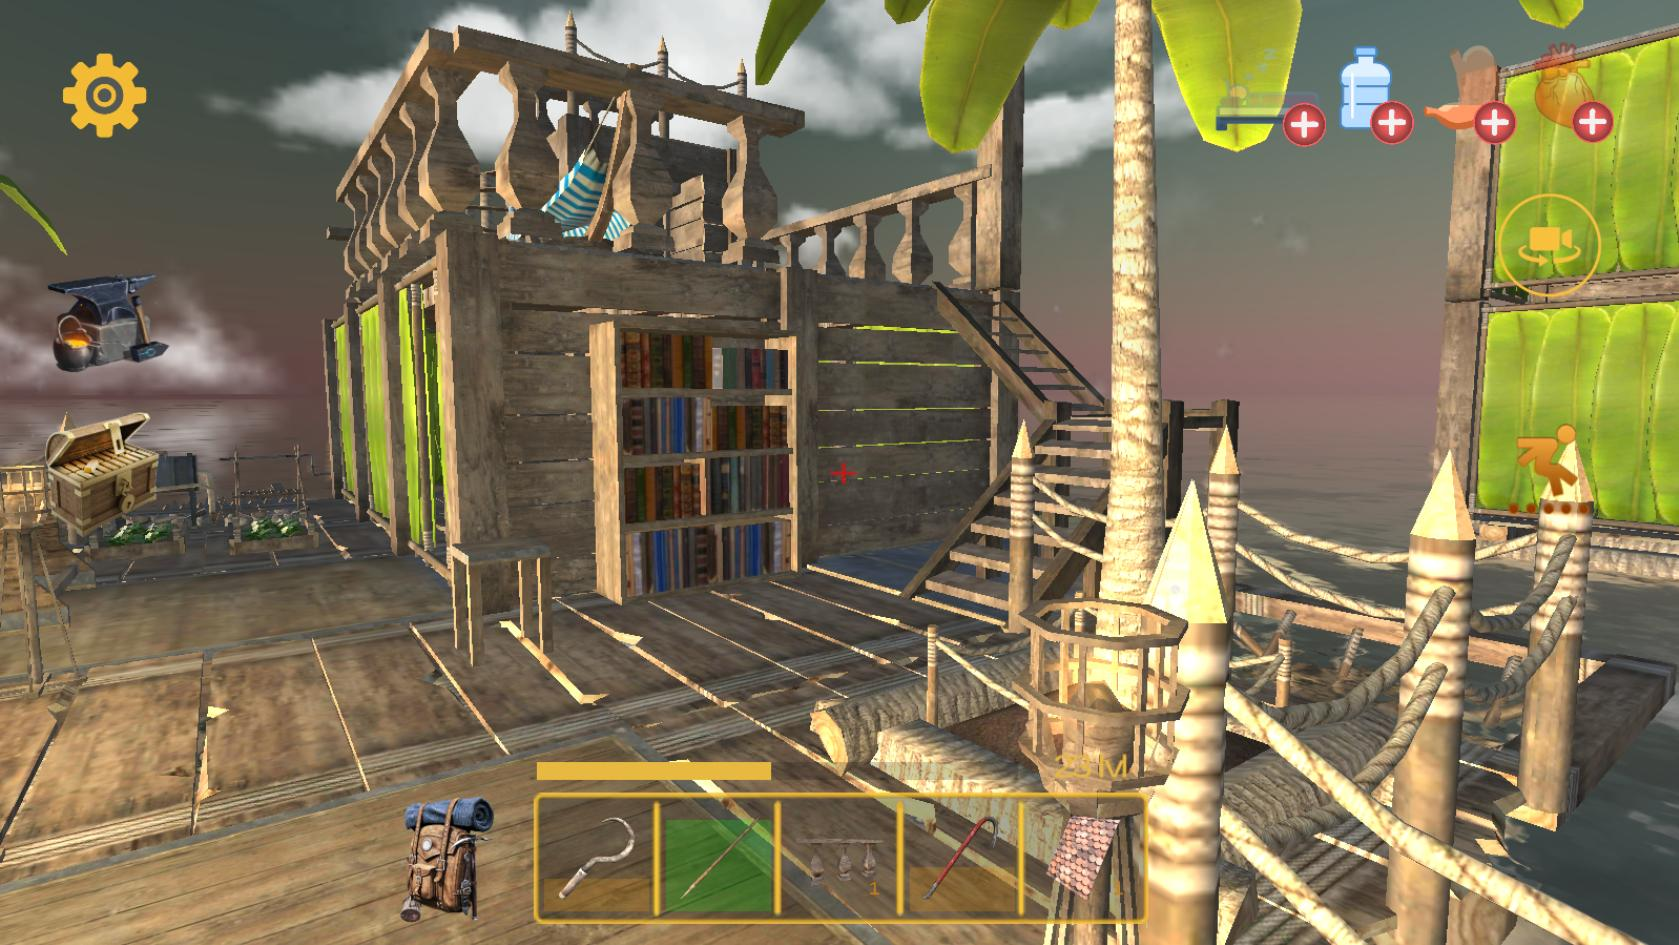 Raft Survival: Multiplayer for Android - APK Download